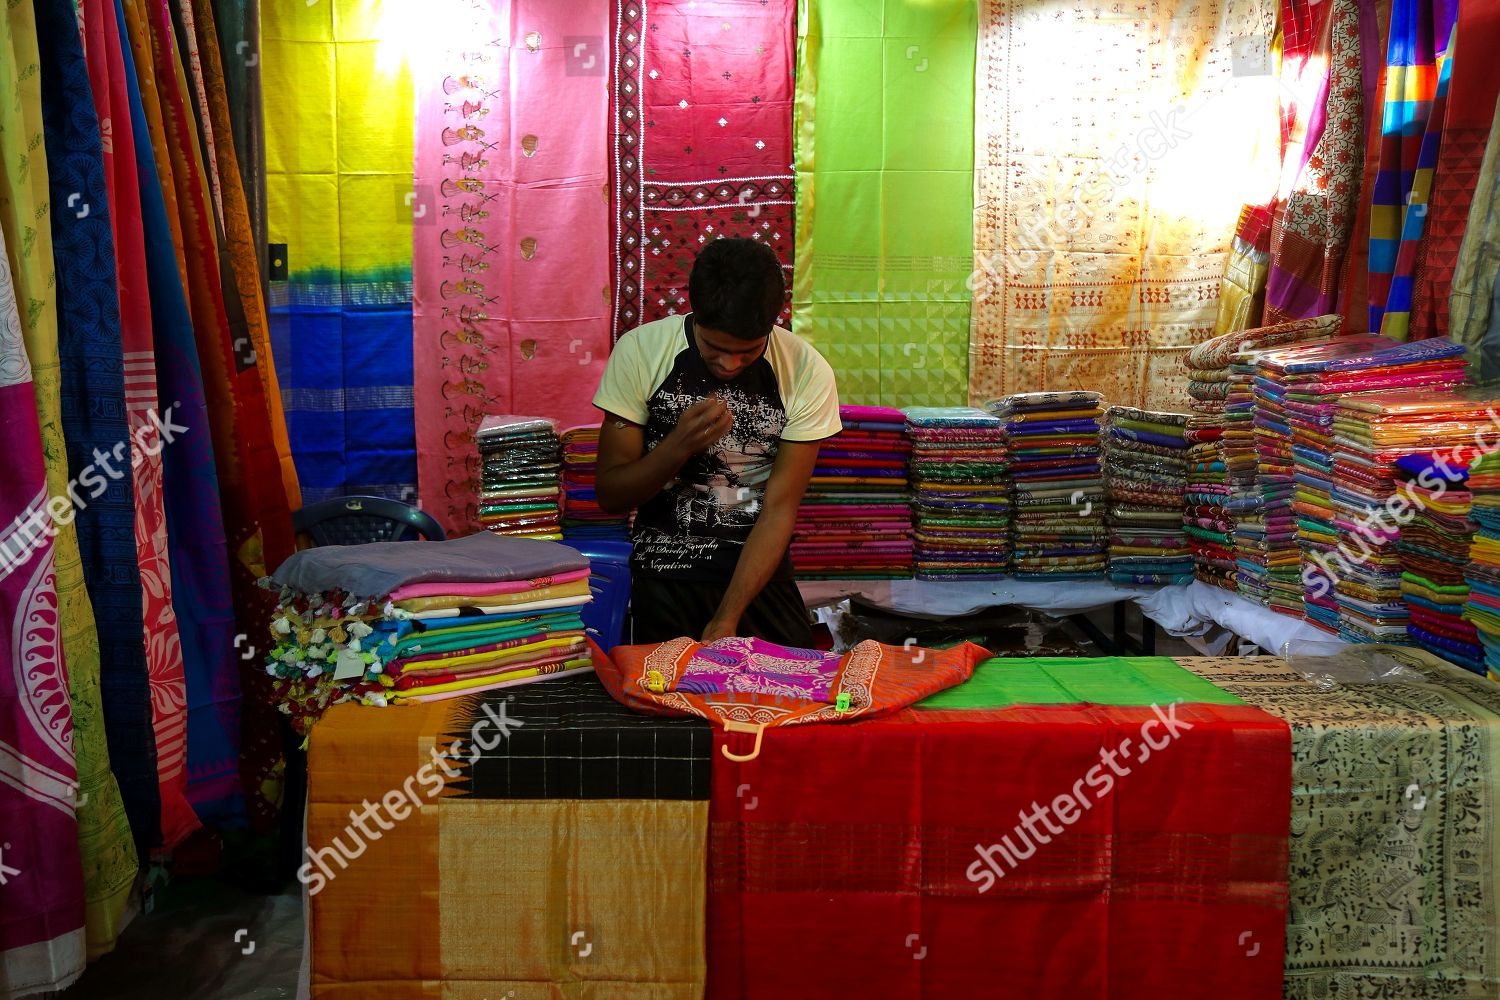 Exhibition Stall Vendors : Indian vendors display khadi products stalls during editorial